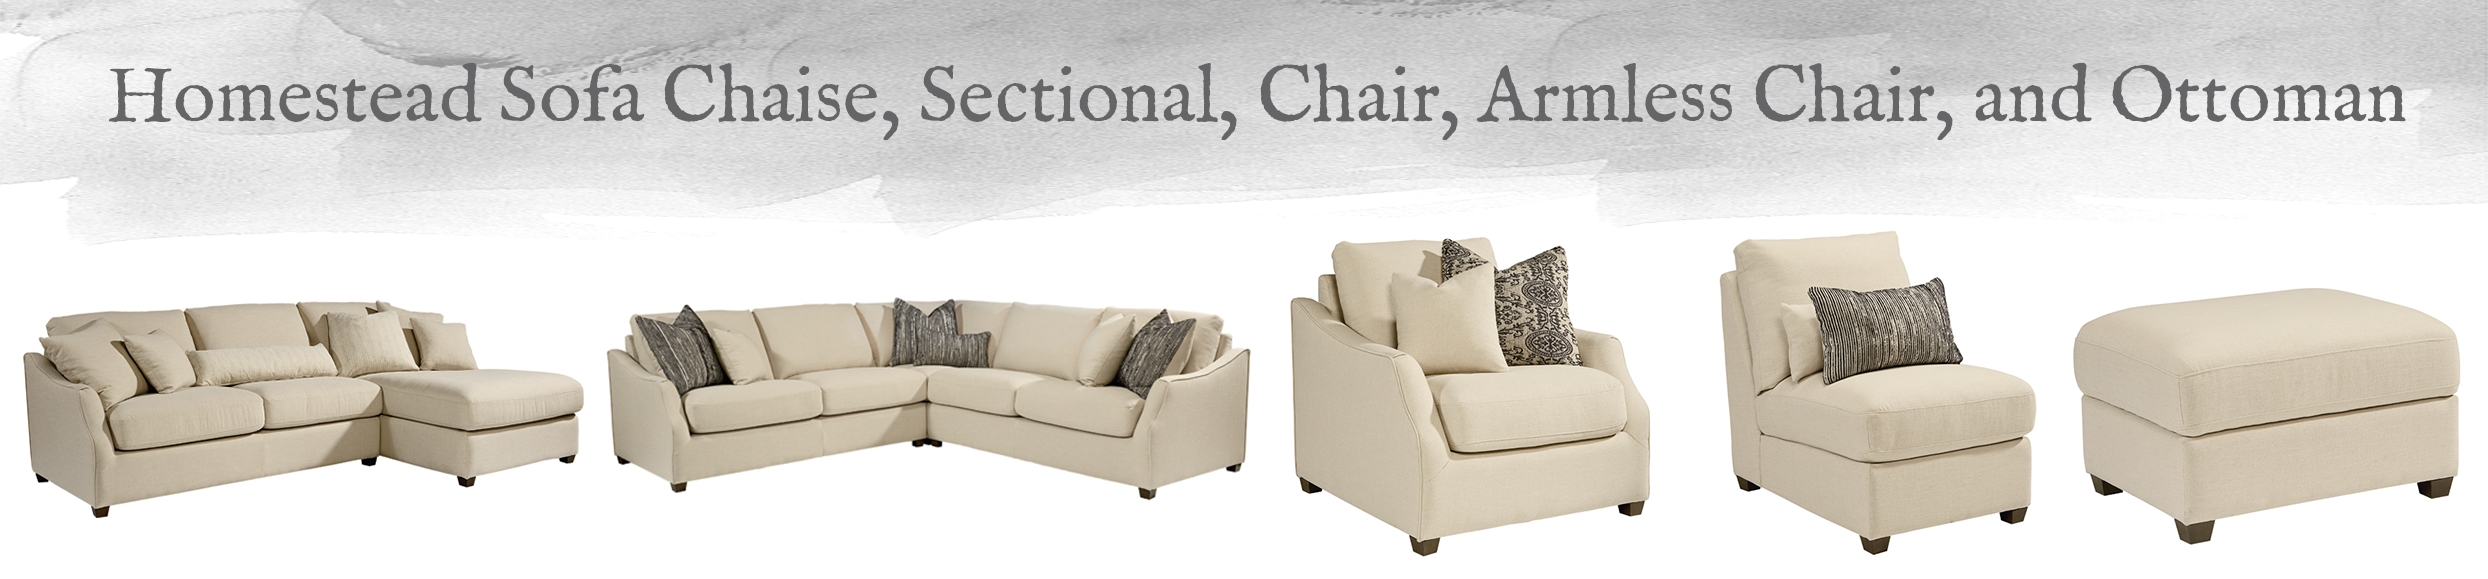 Magnolia Home Preview: Upholstered Living Room Collection   Design Pertaining To Magnolia Home Homestead 3 Piece Sectionals By Joanna Gaines (Image 21 of 25)